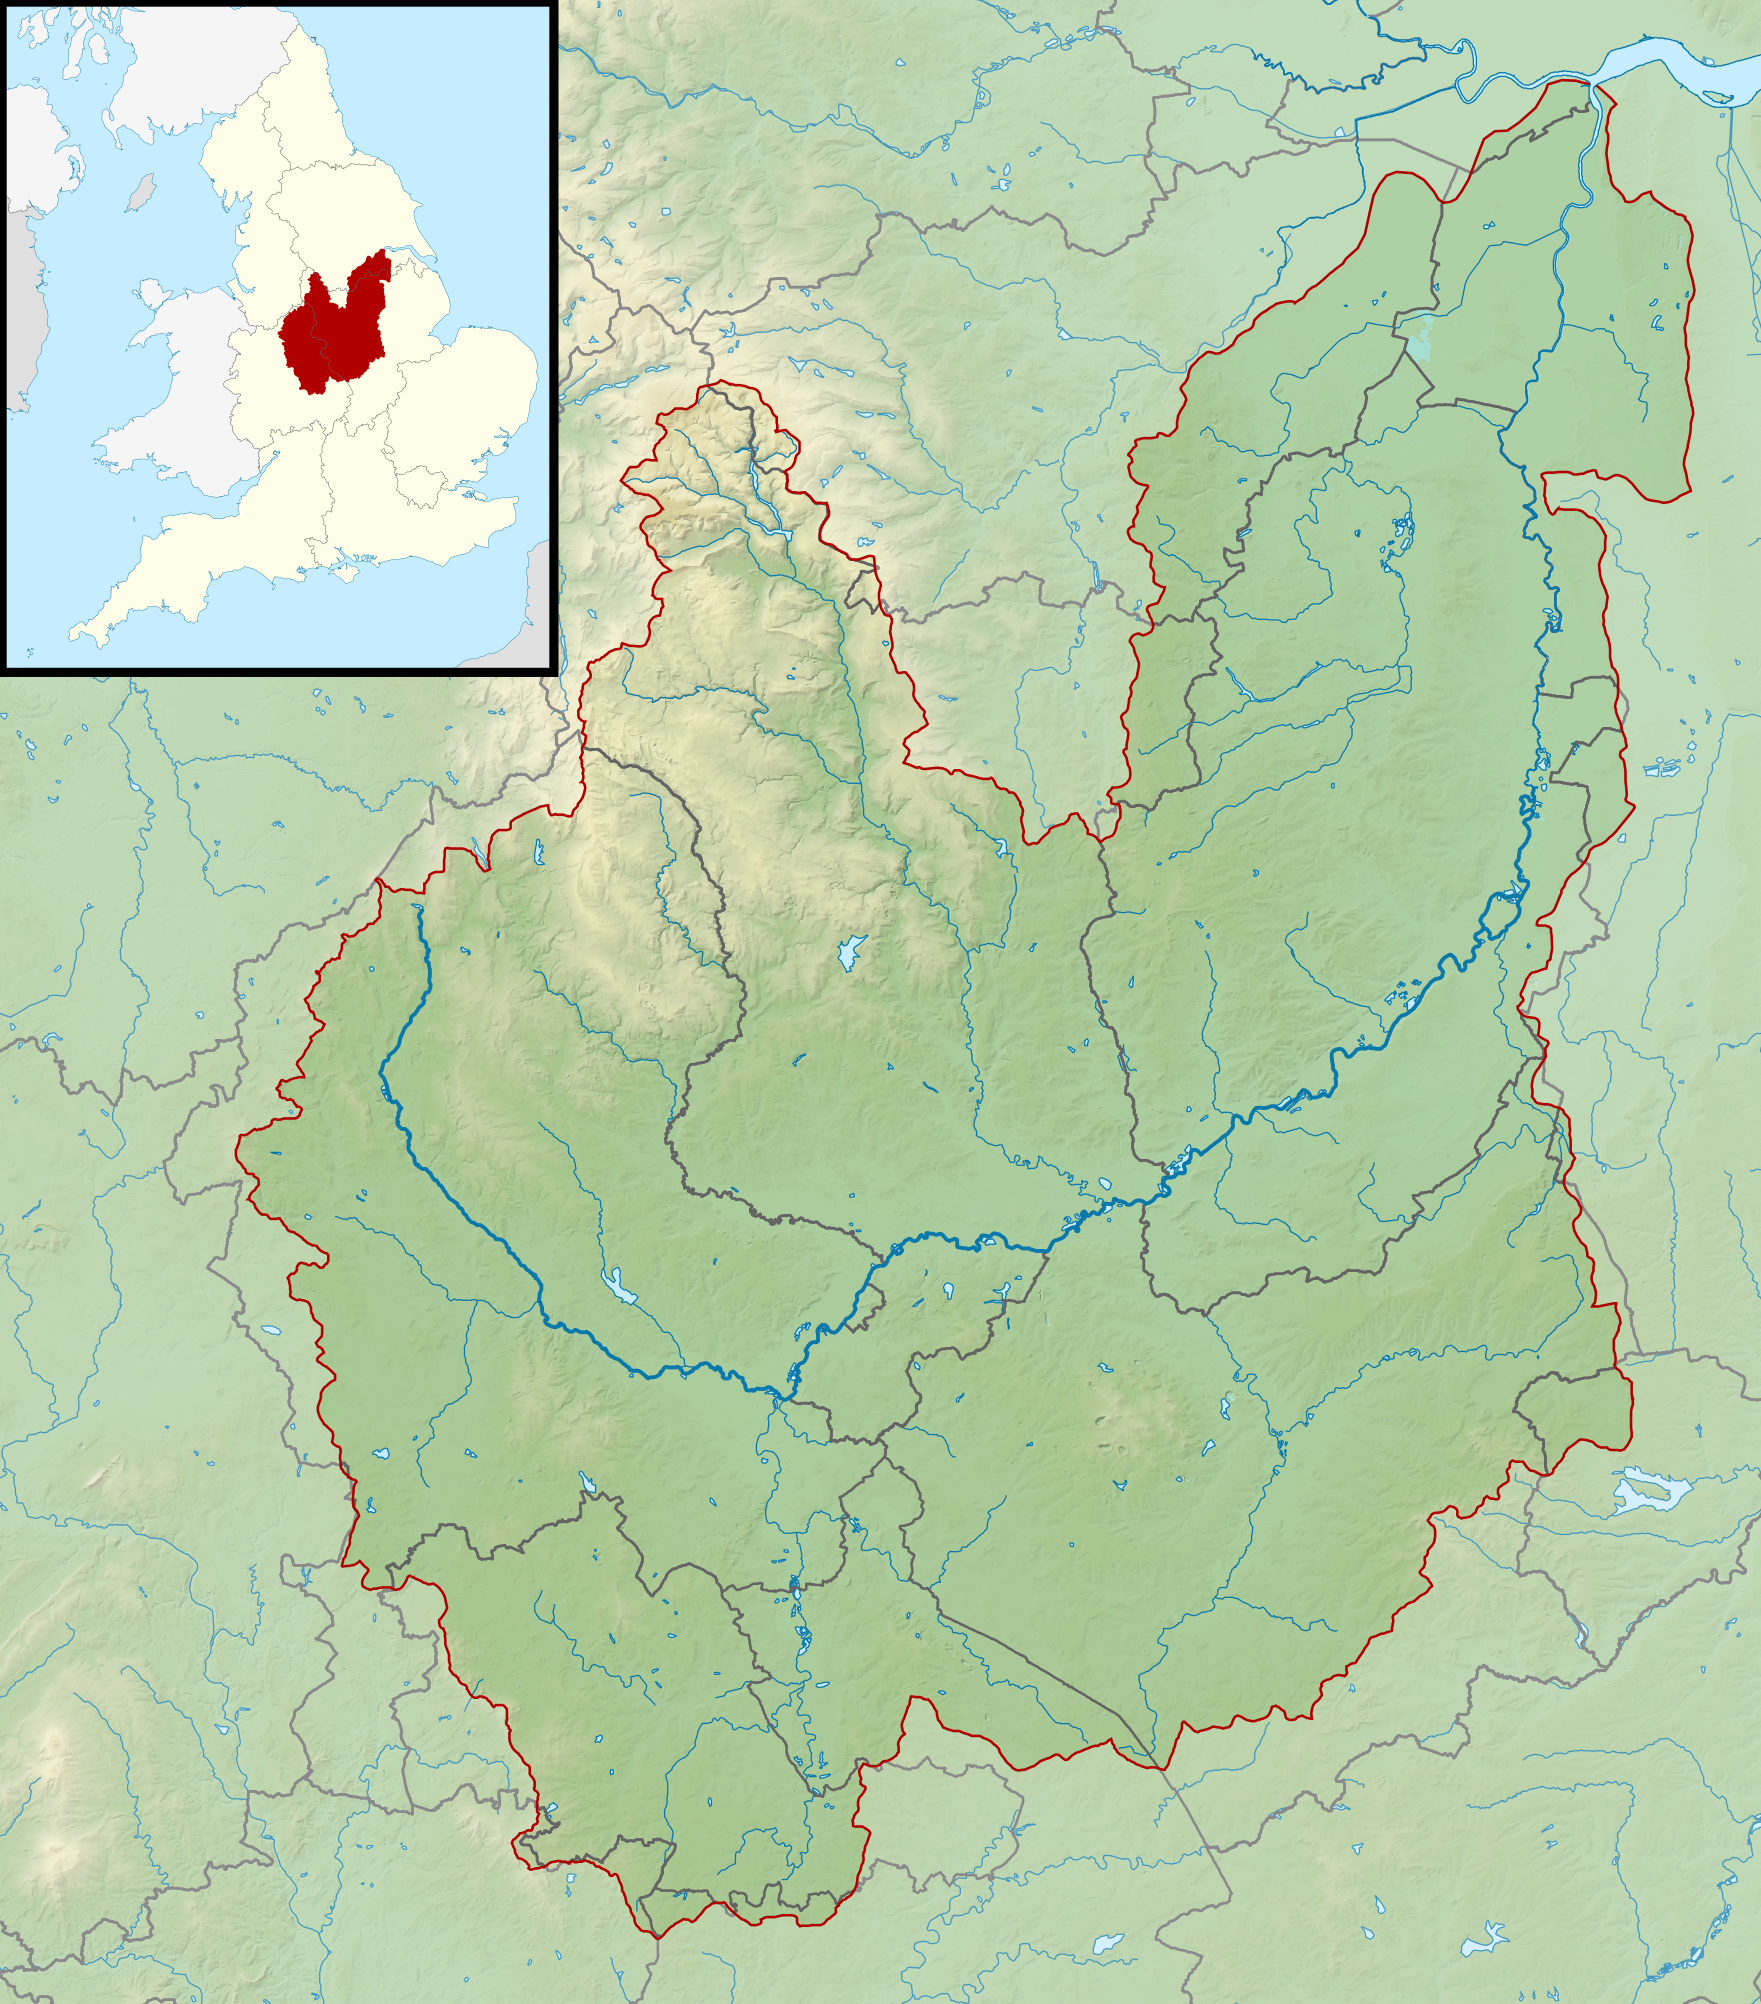 FileRiver Trent Mappng Wikimedia Commons - River trent map